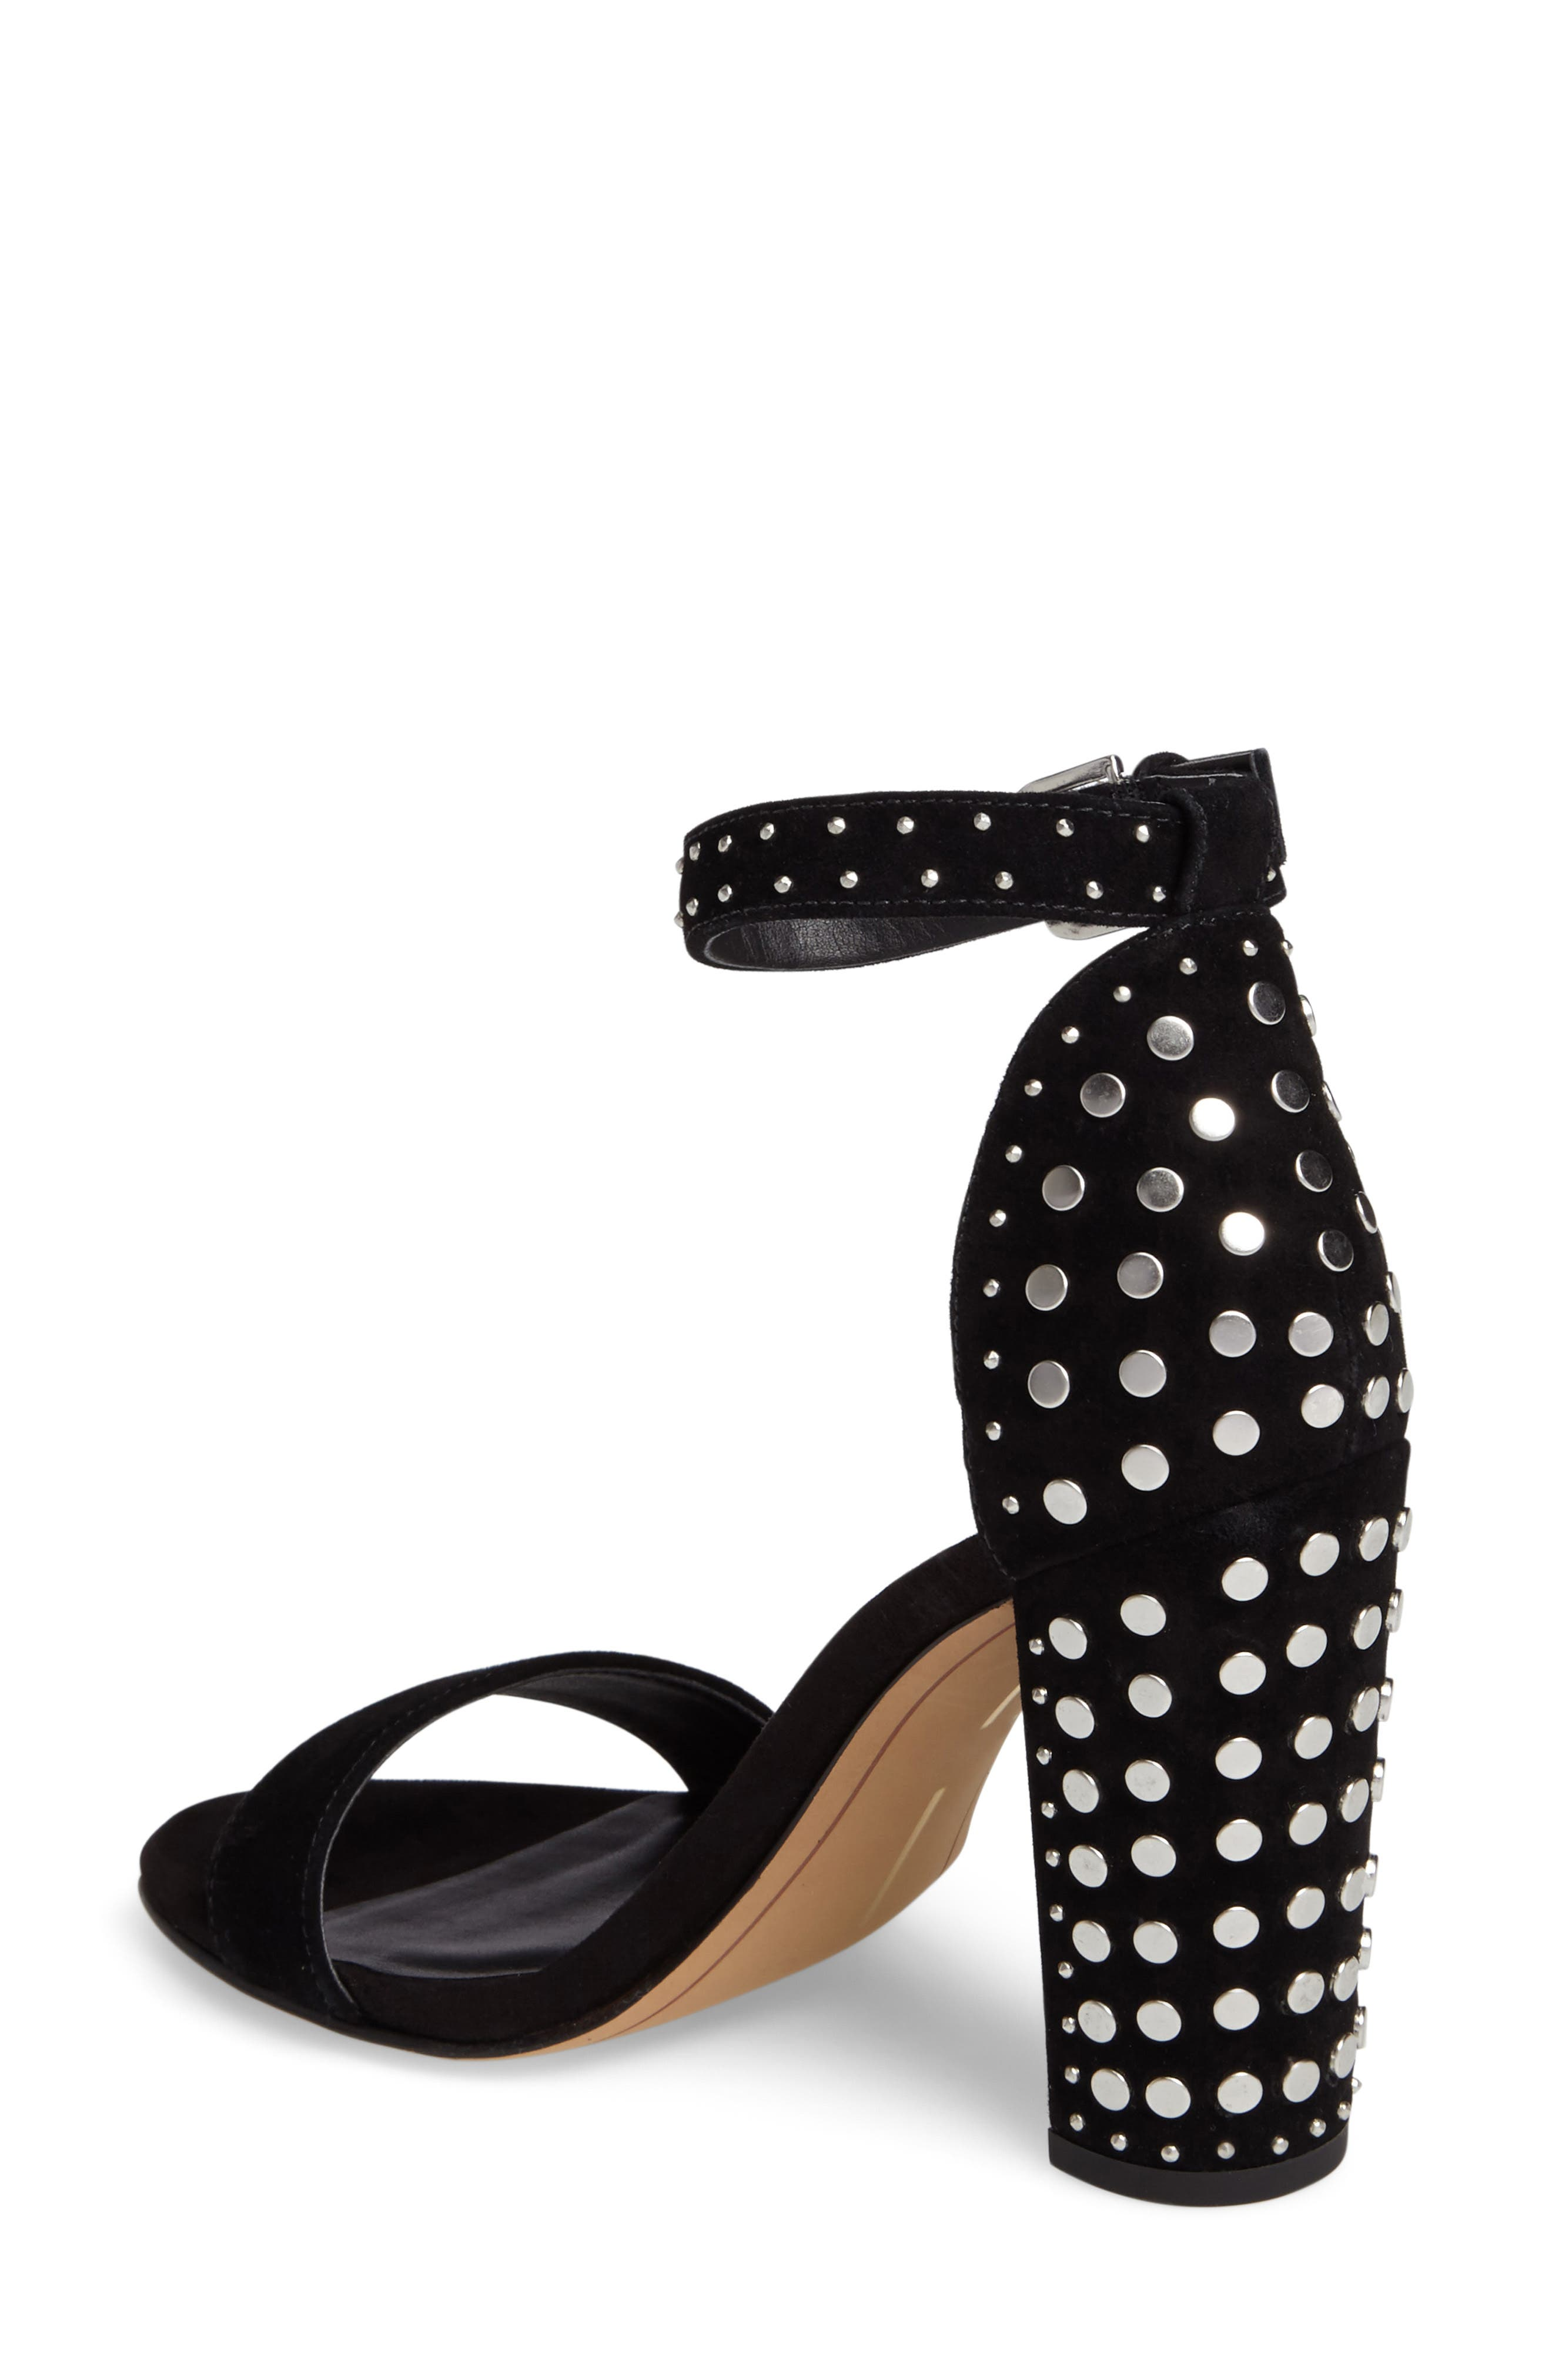 Hendrix Studded Sandal,                             Alternate thumbnail 2, color,                             001